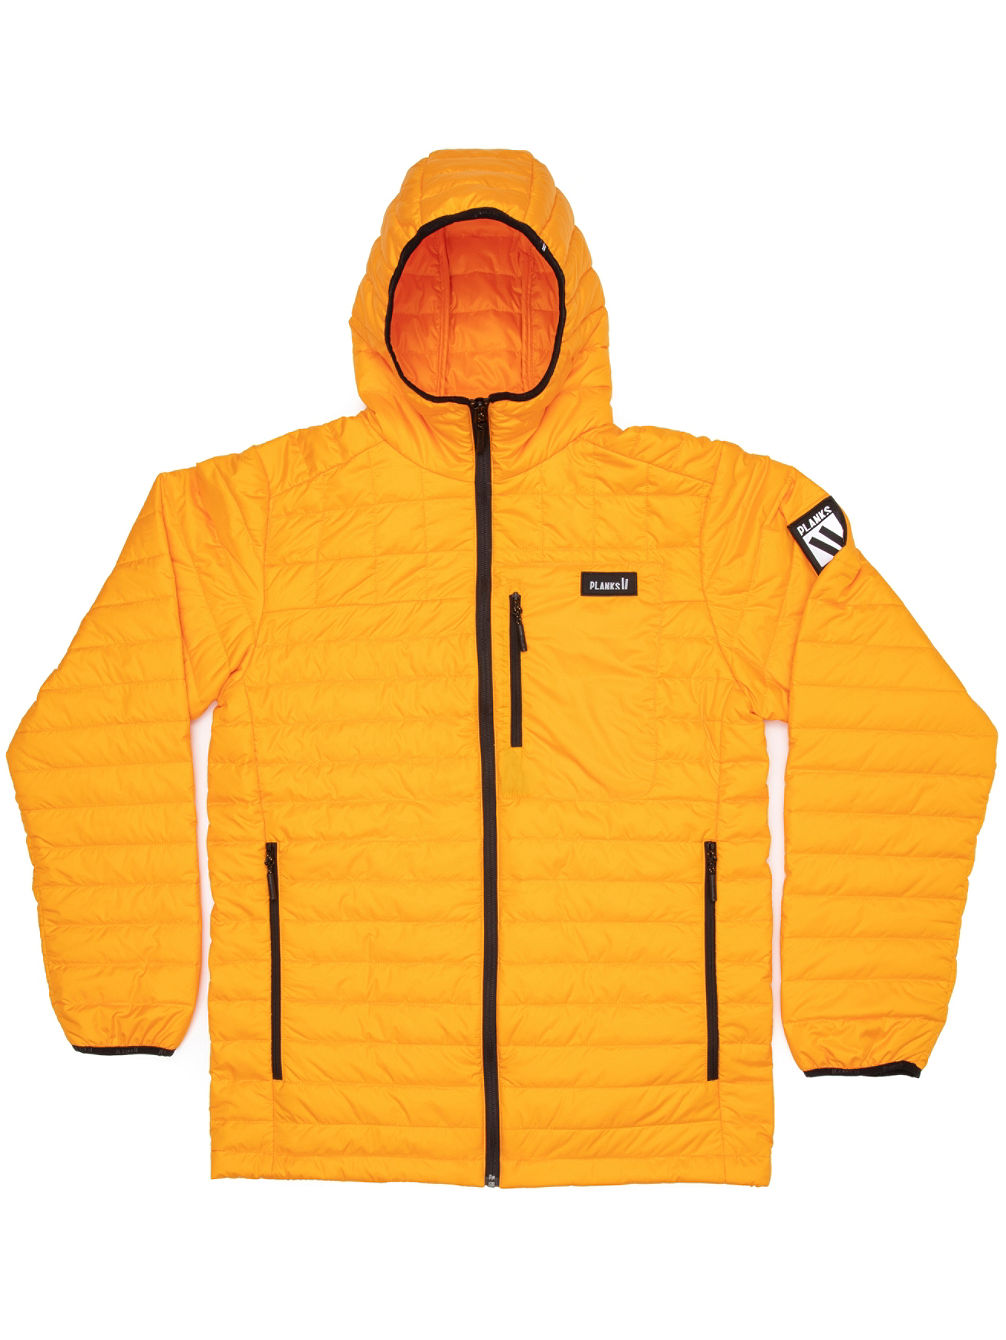 Cloud 9 Insulator Fleece Veste